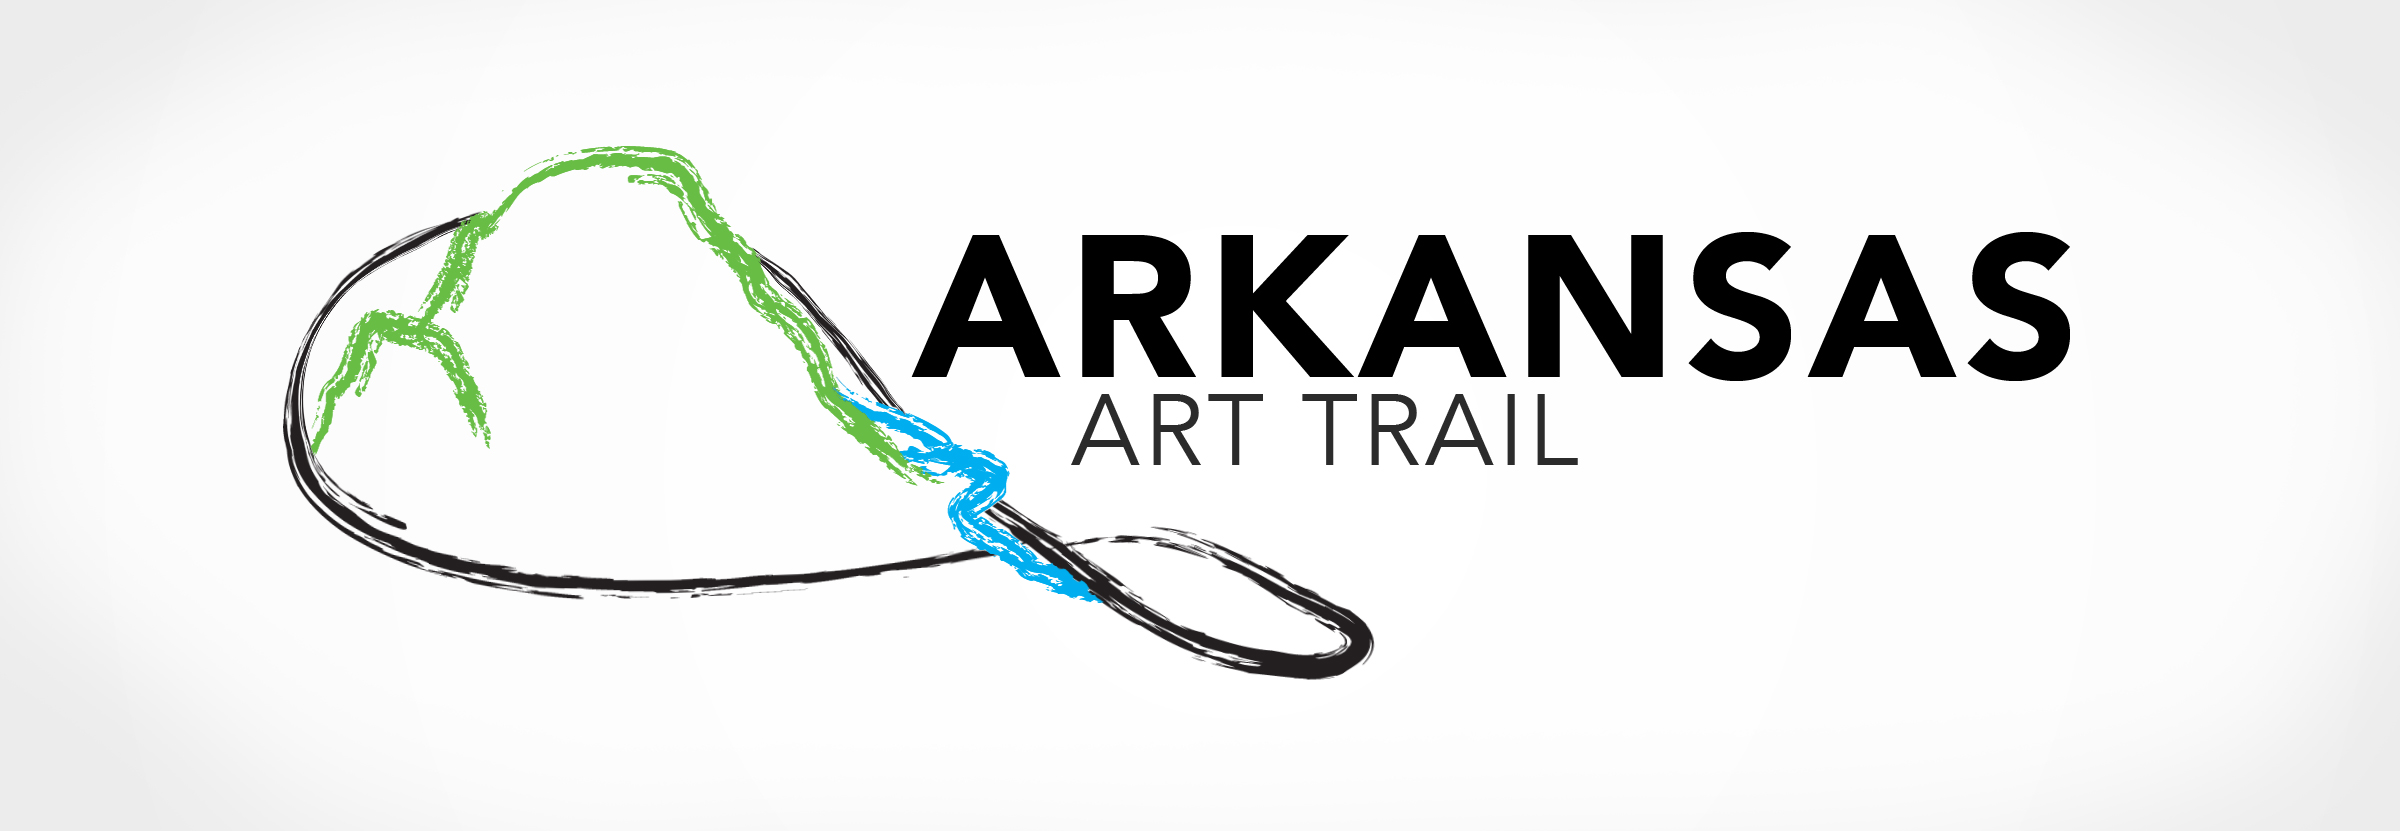 arkansas Art trail